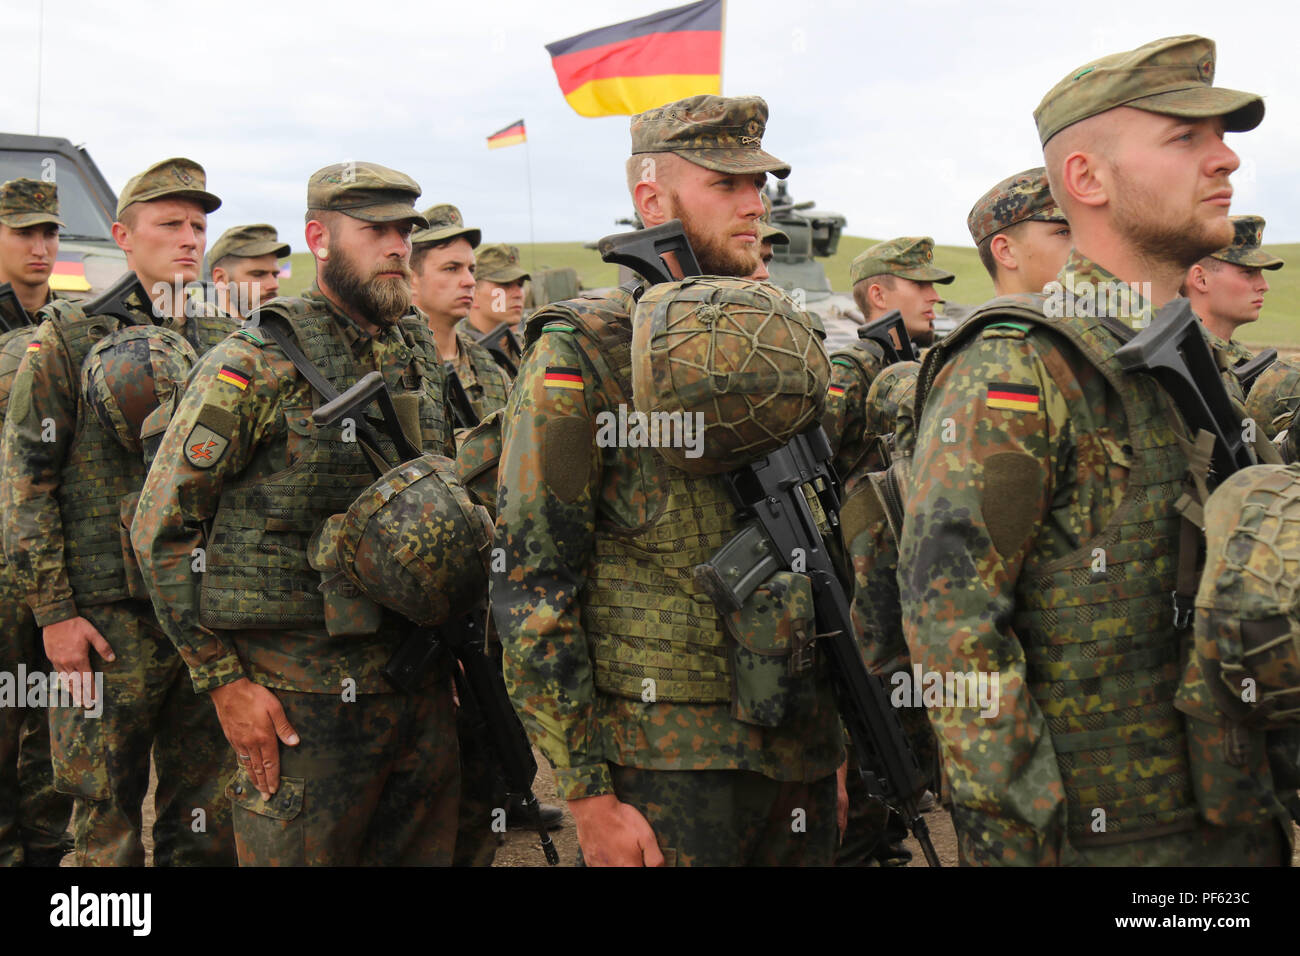 Soldiers Guard Battalion German Armed Stock Photos & Soldiers Guard